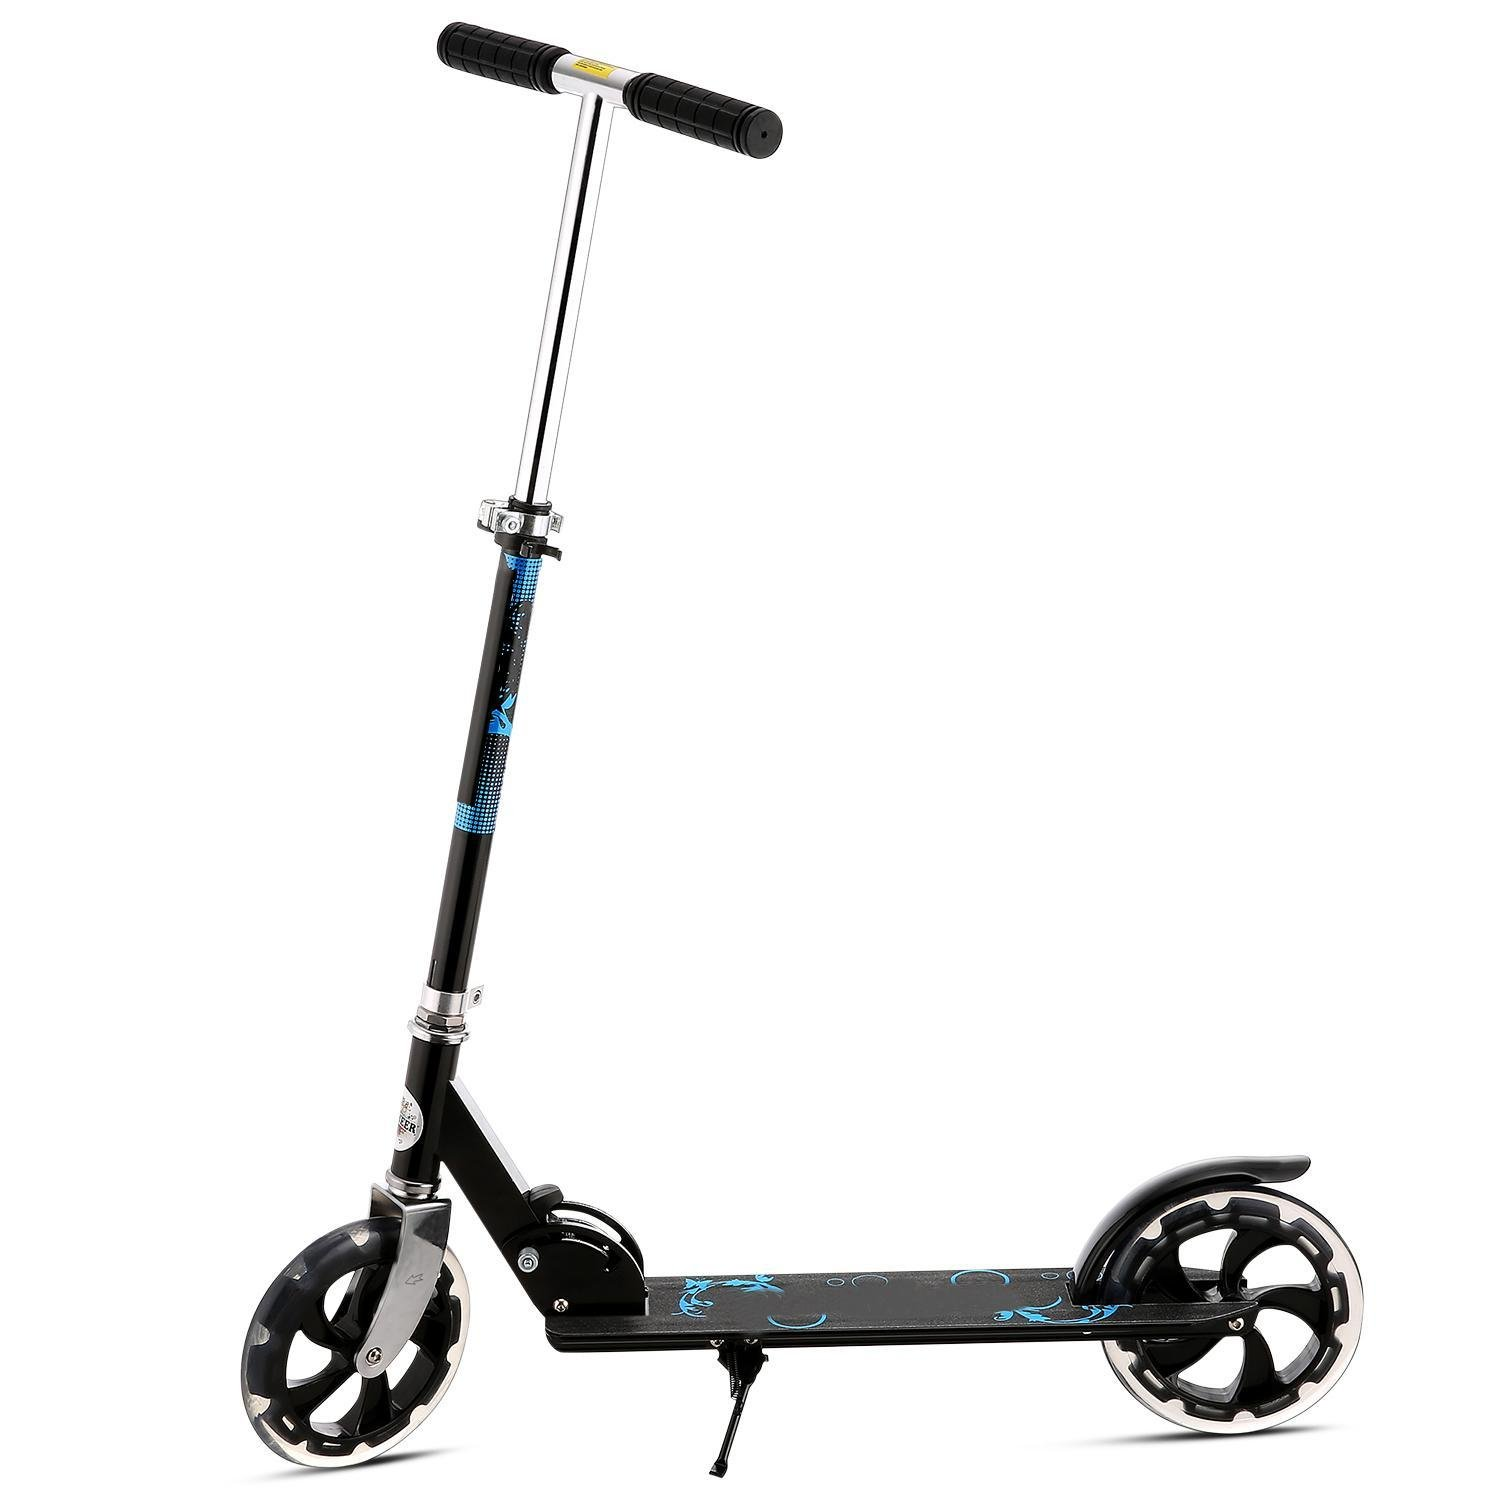 Kaluo Folding Kick Scooter 2 Wheel 3 Levels Adjustable Height Portable for Adult Kids(US Stock)